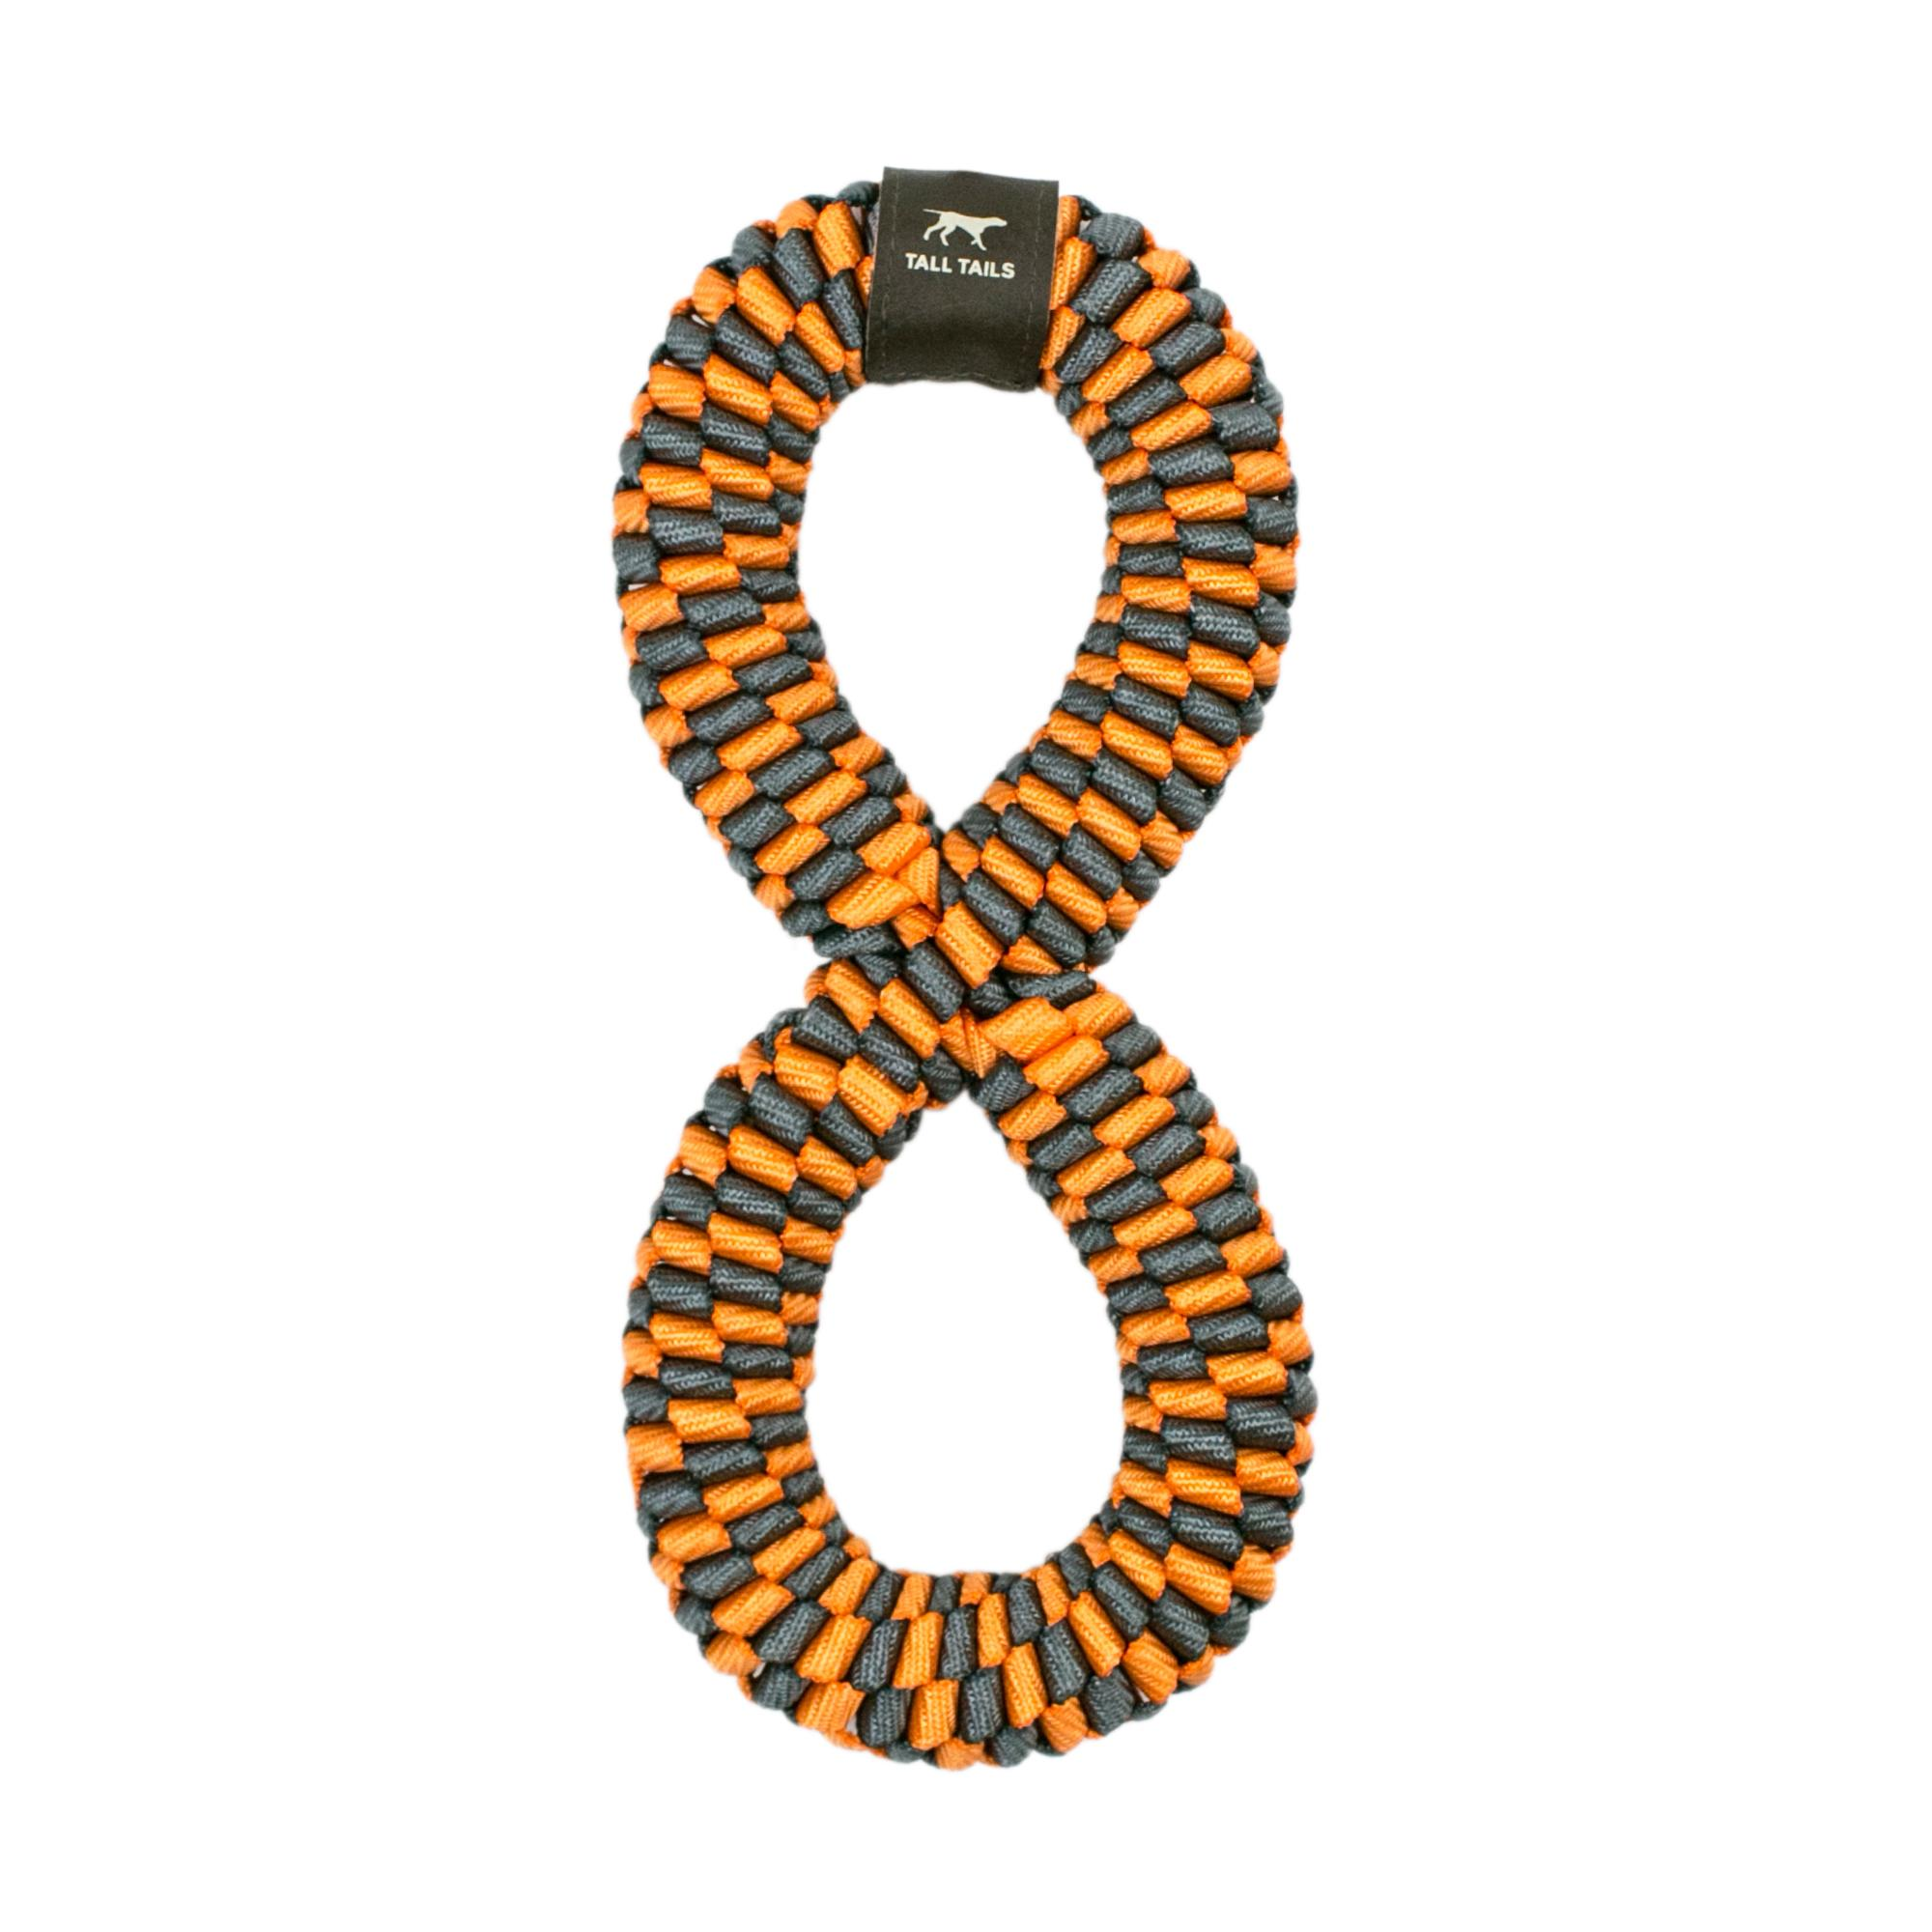 Tall Tails Braided Infinity Tug Dog Toy,  Orange, 11-in